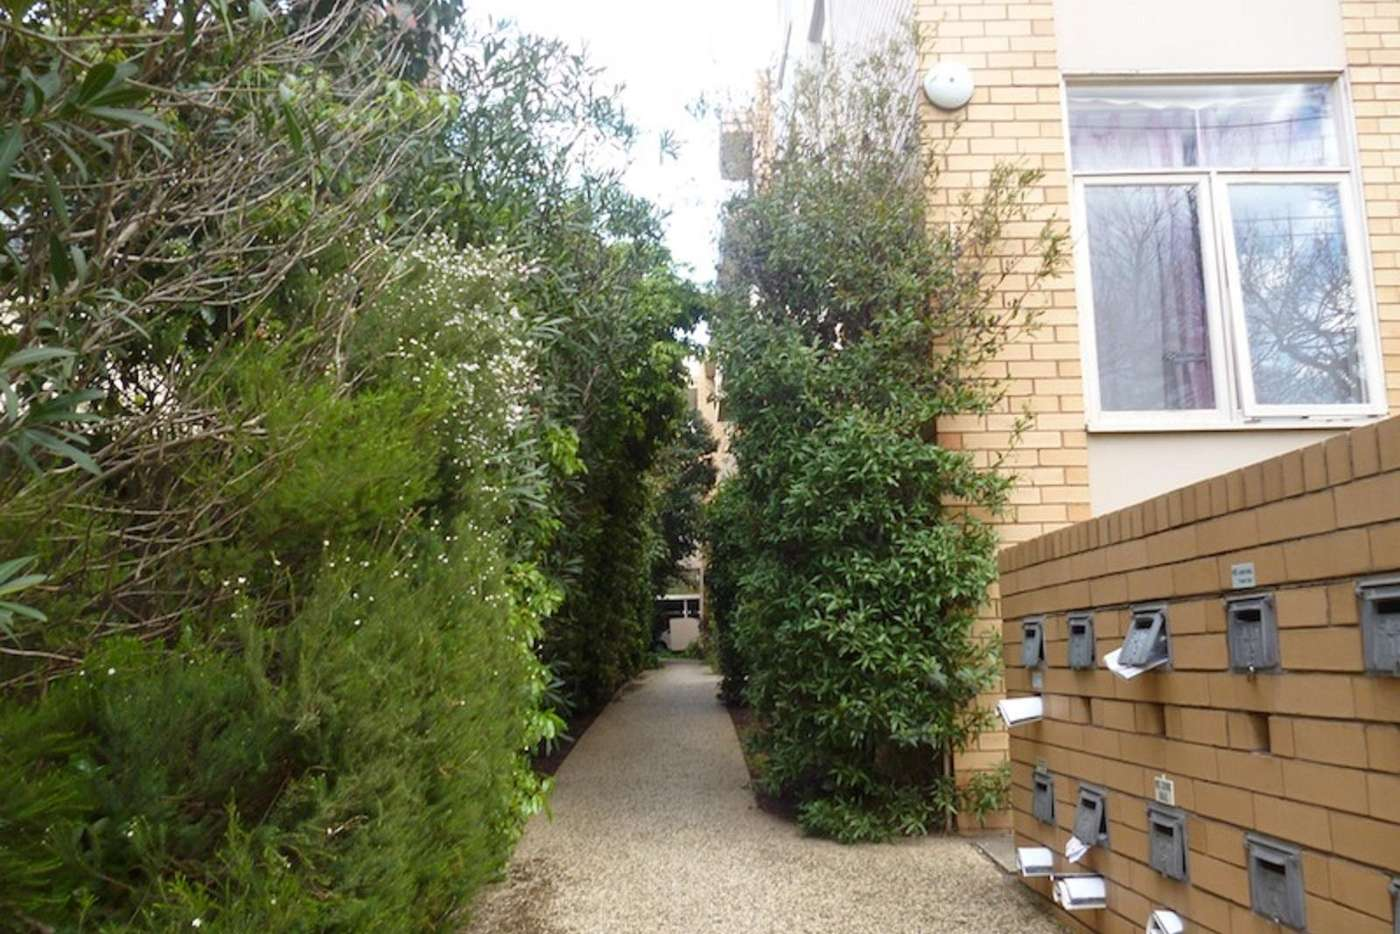 Main view of Homely apartment listing, 15/26 Armadale Street, Armadale VIC 3143